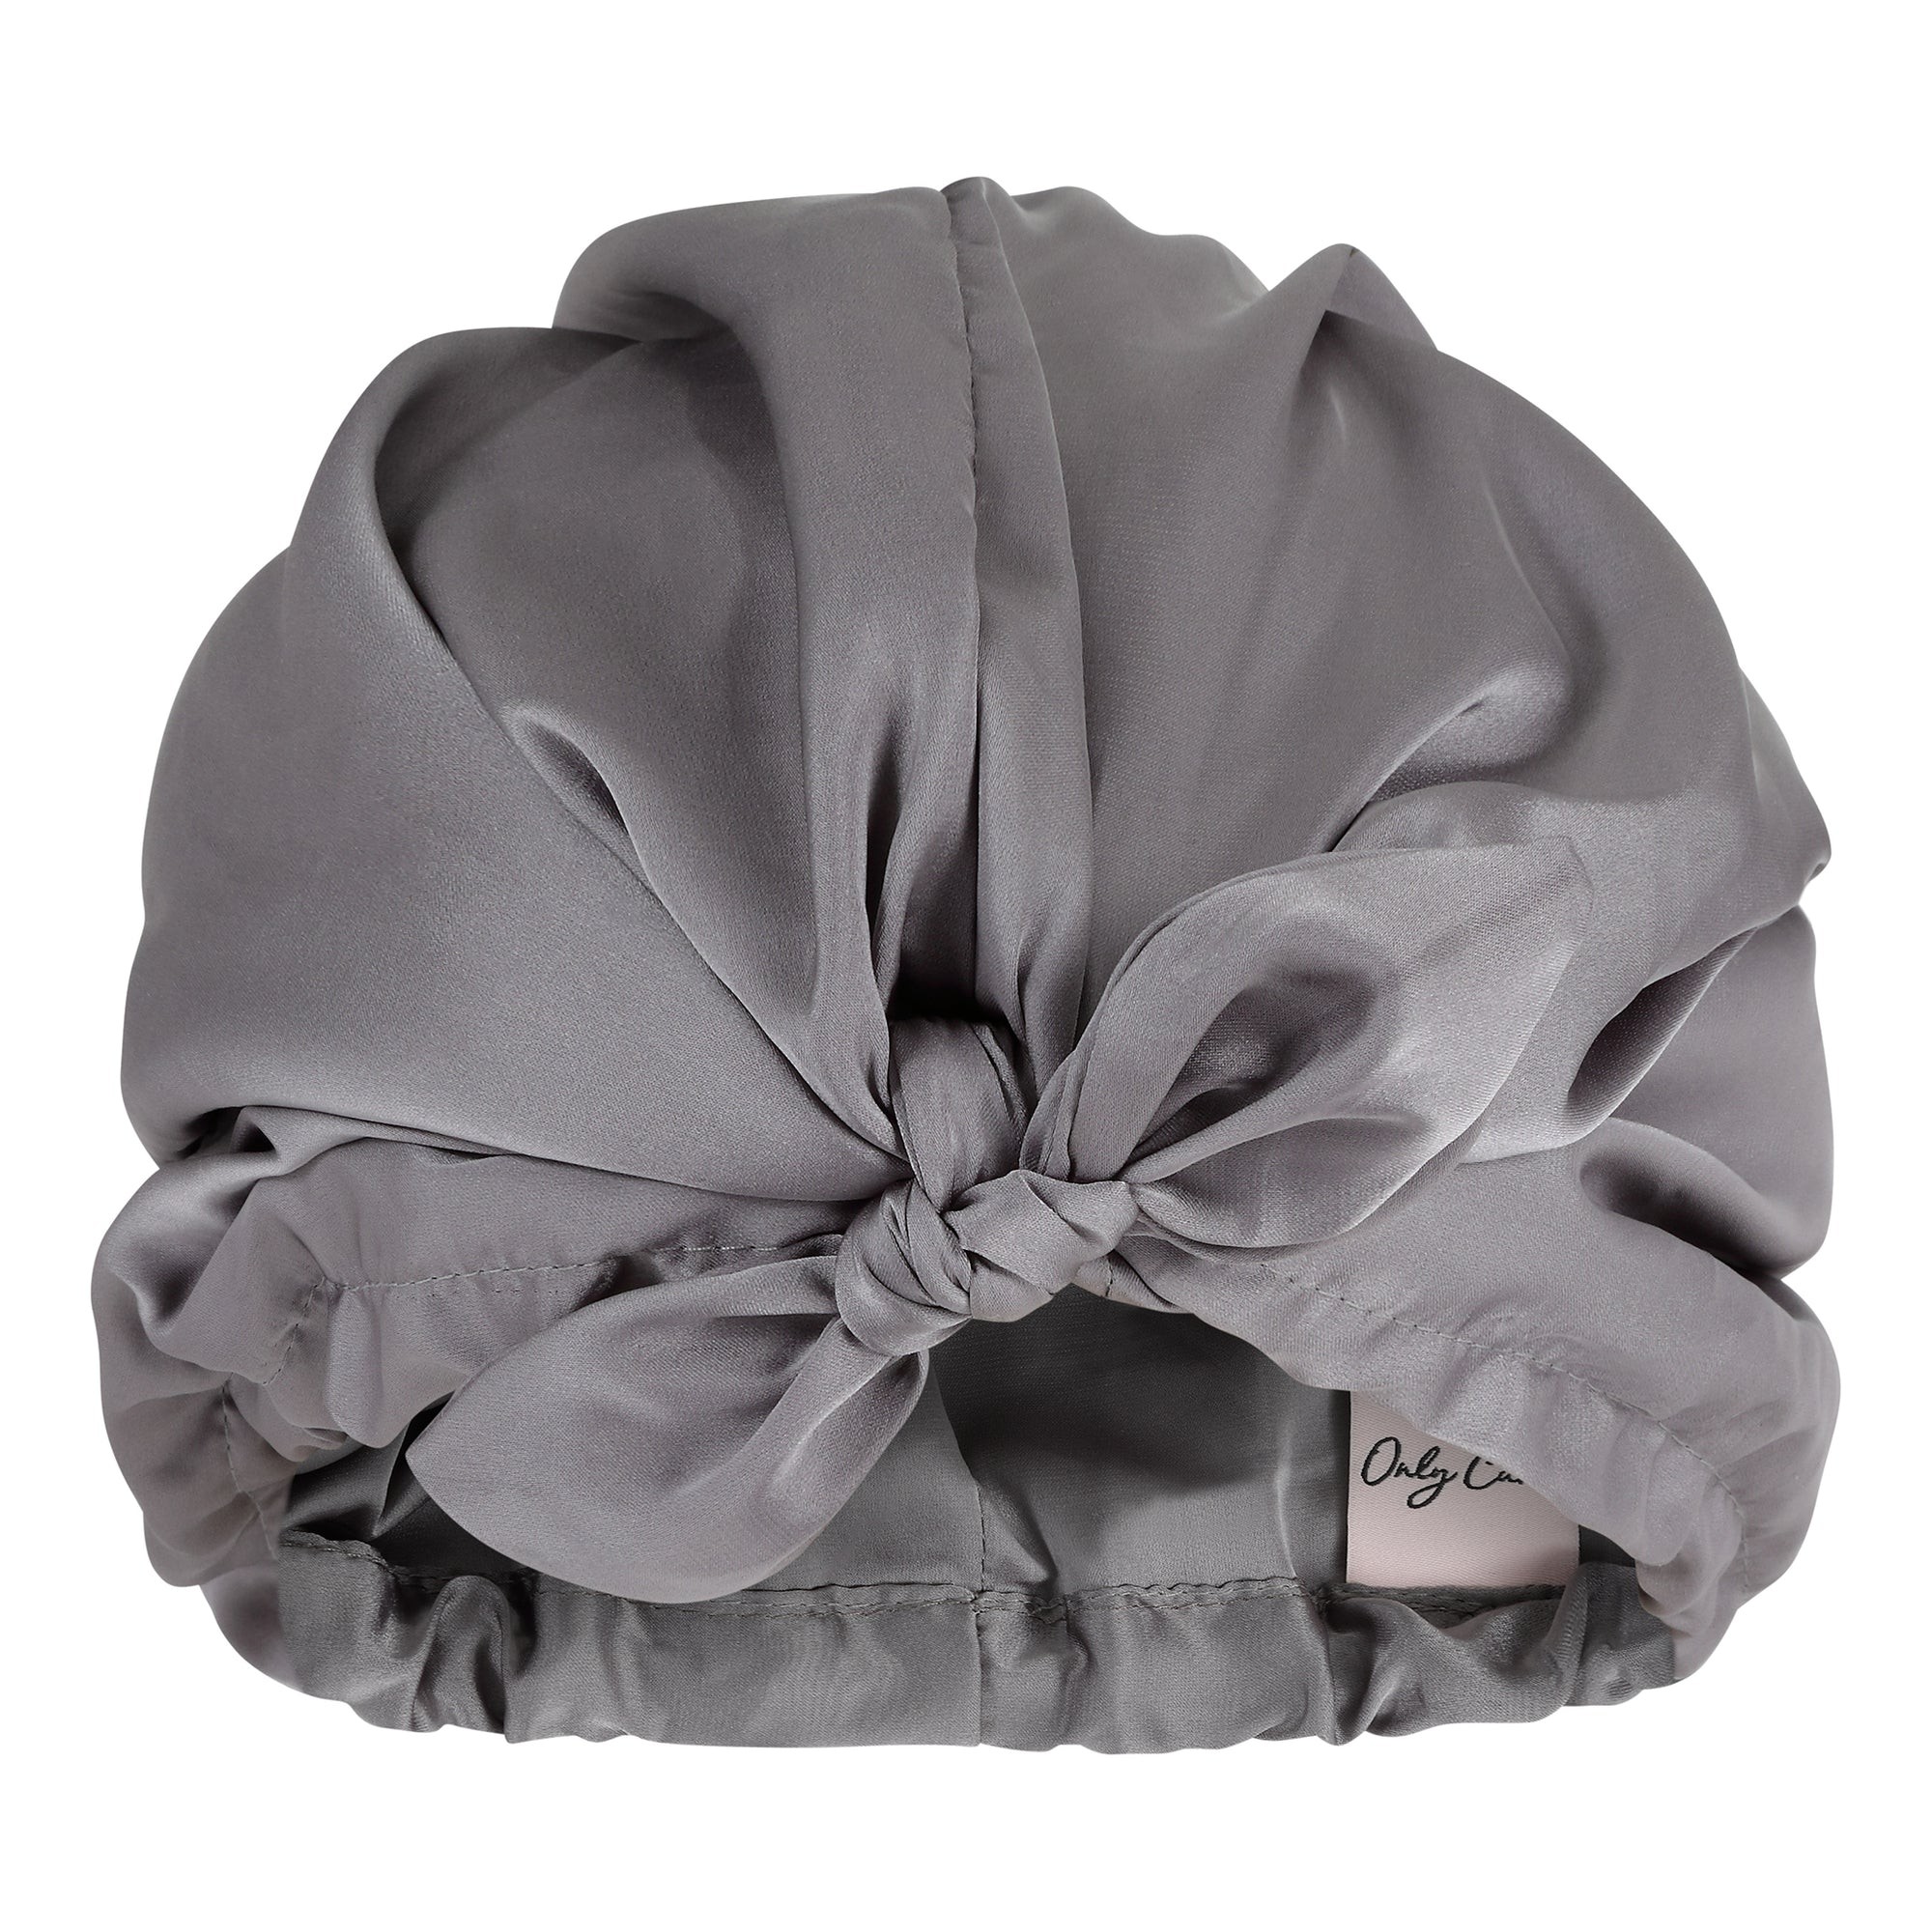 Only Curls Satin Sleep Turban & Bonnet